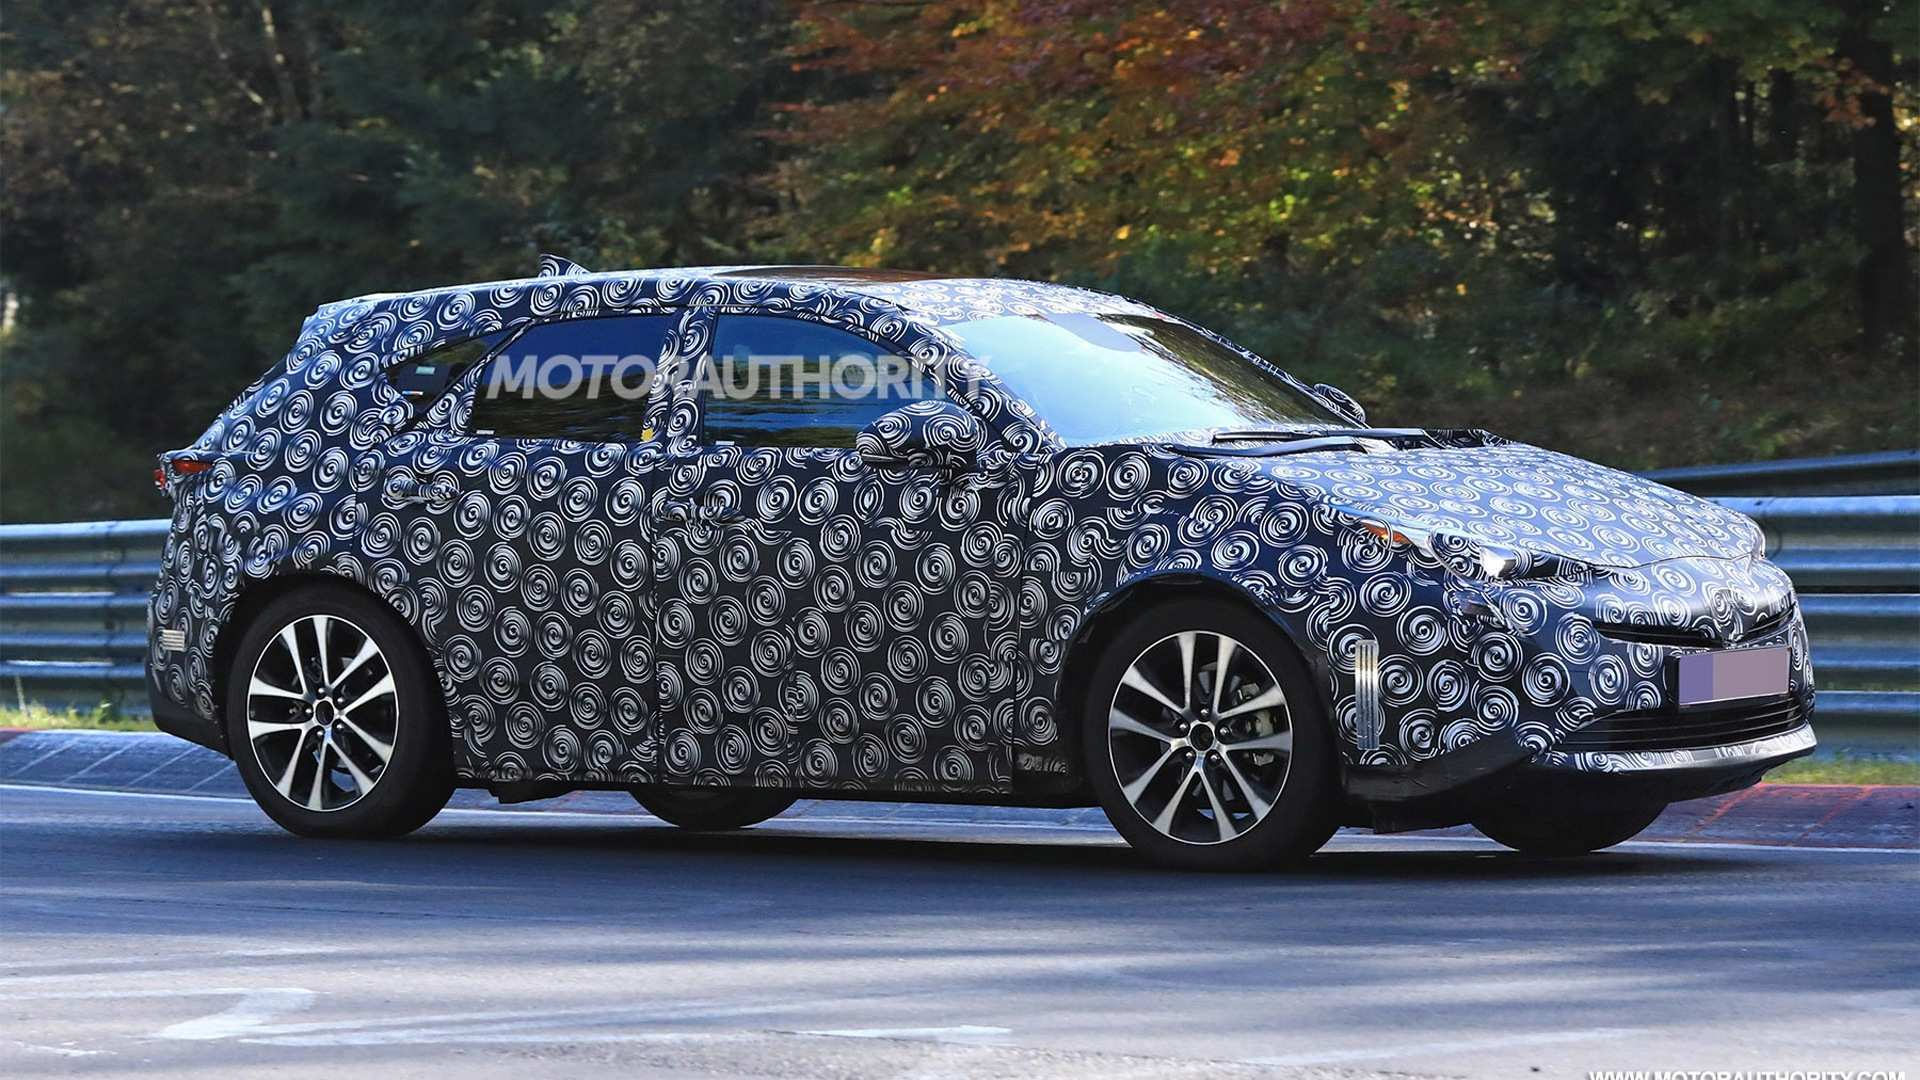 82 New 2020 Spy Shots Toyota Prius Price And Release Date